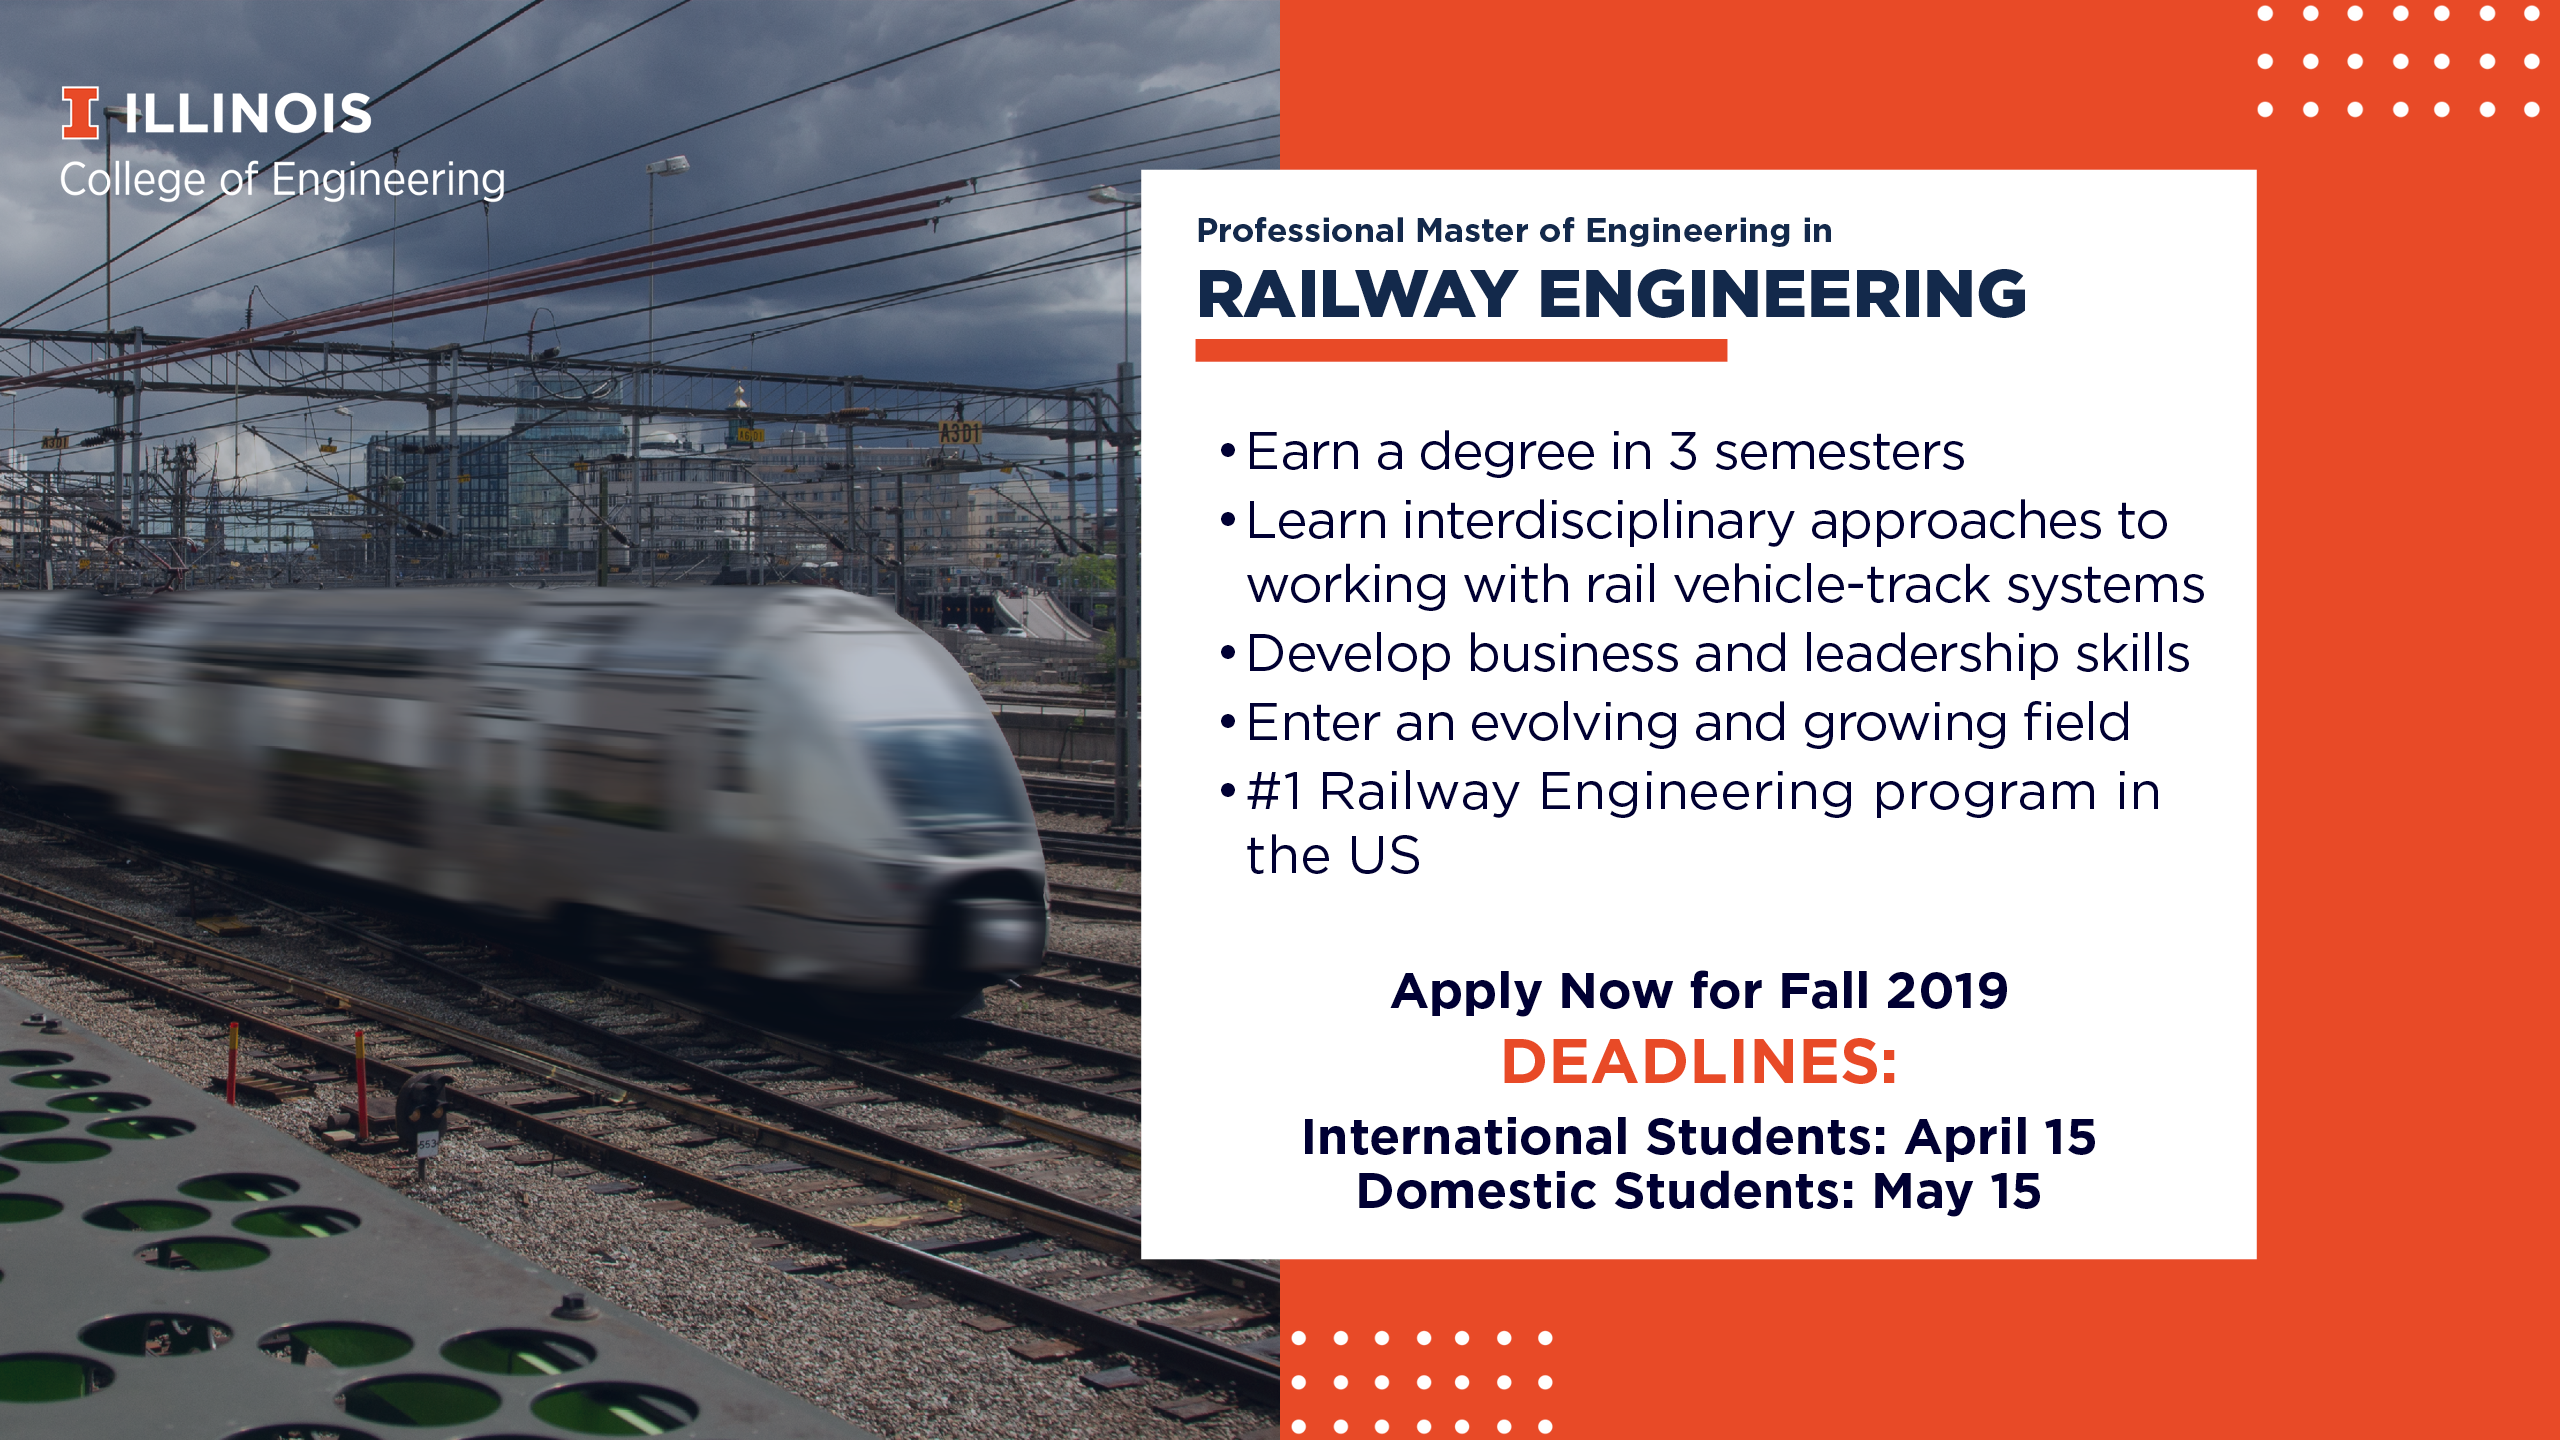 Graphic of moving train, text about program and call to apply now for a Master of Engineering in Railway Engineering